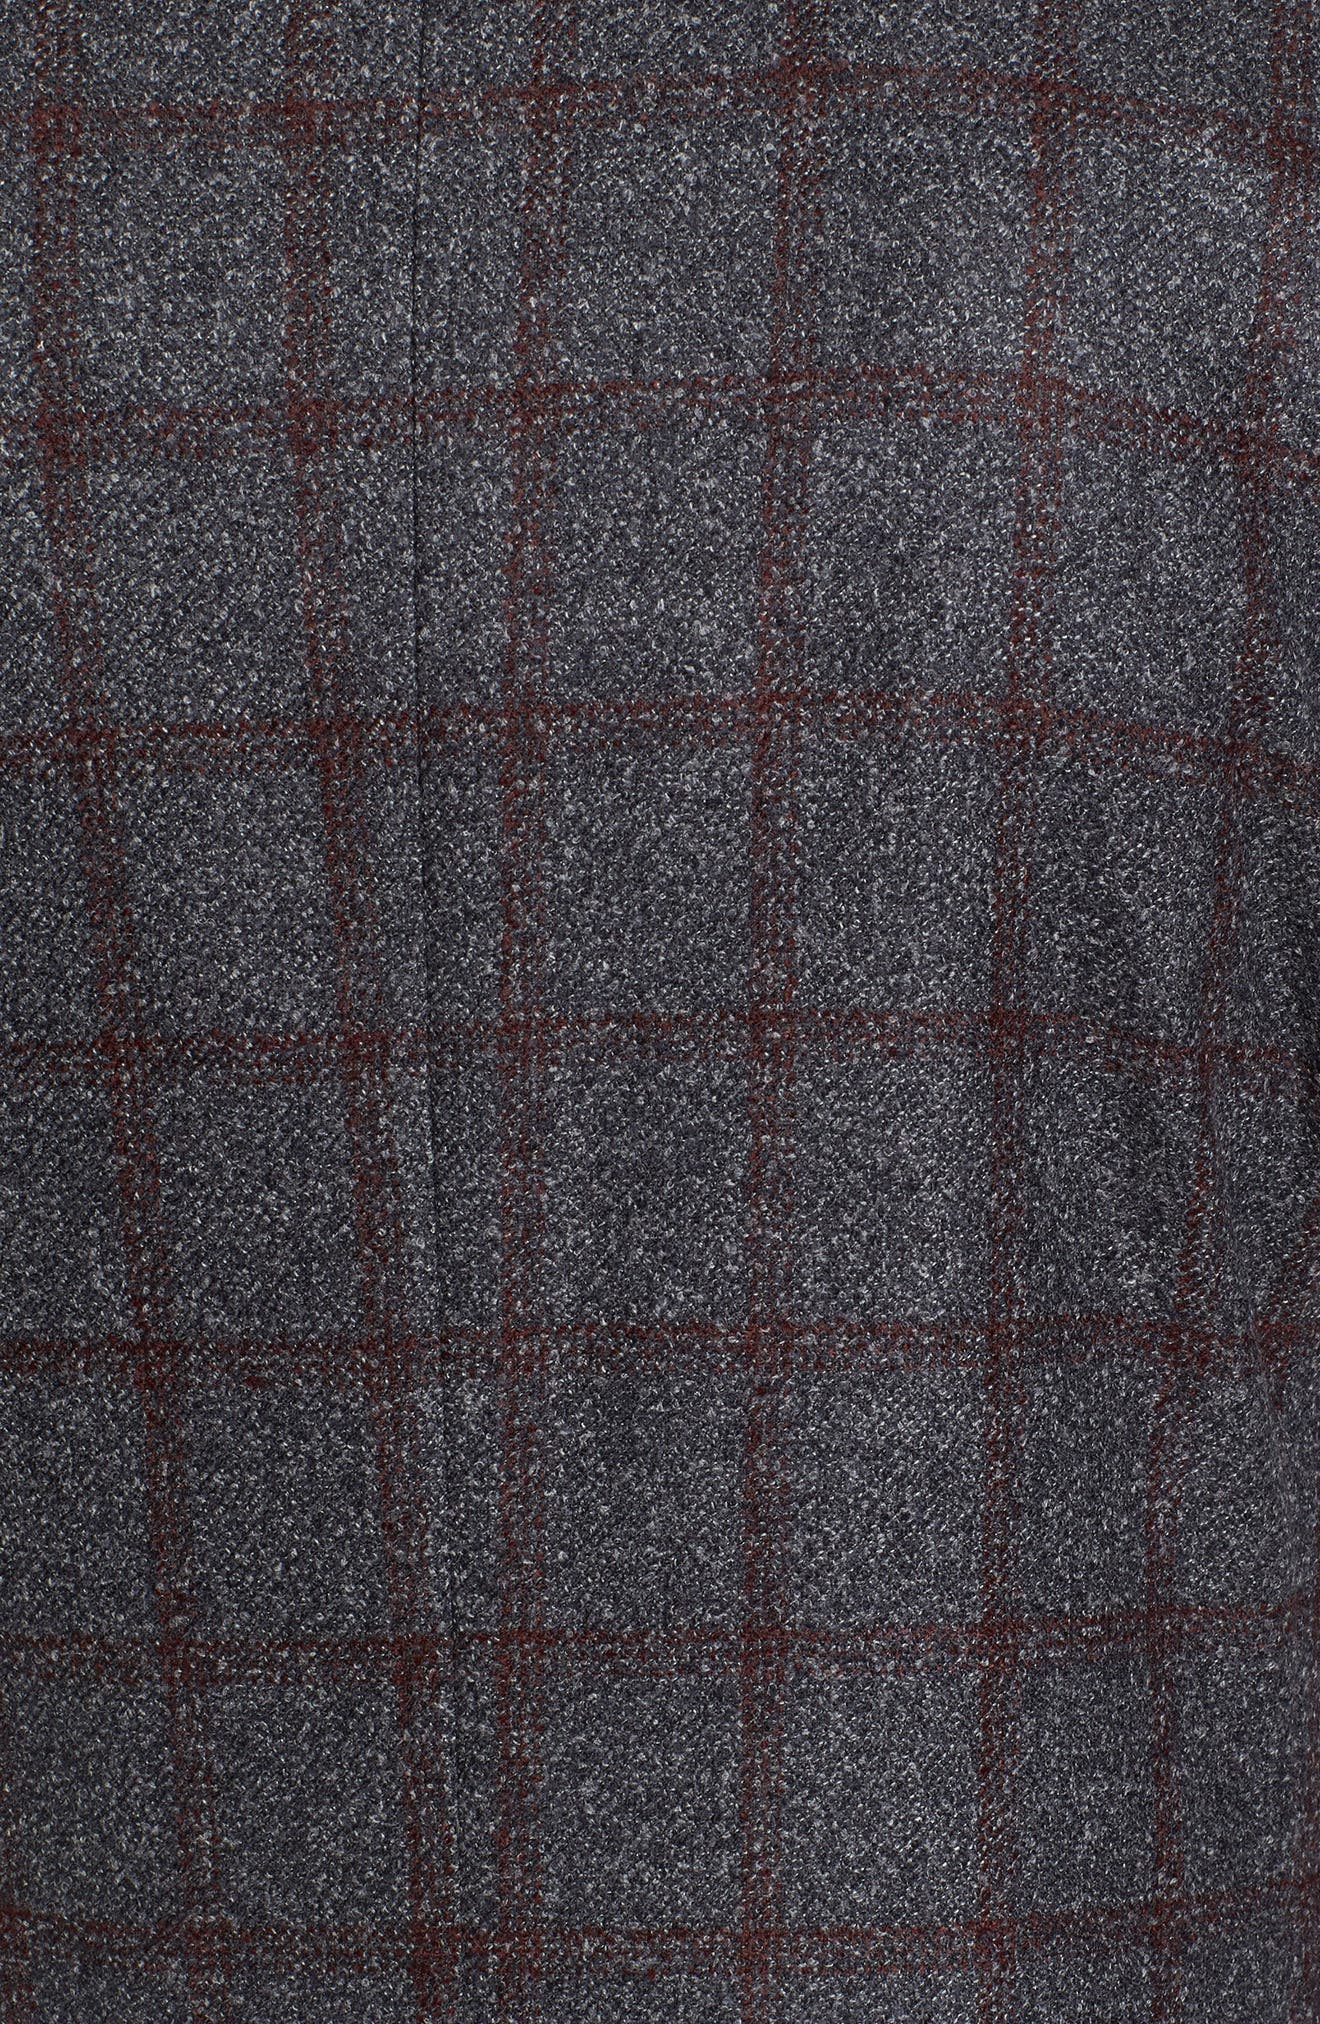 Kyle Trim Fit Windowpane Wool Blend Sport Coat,                             Alternate thumbnail 6, color,                             020